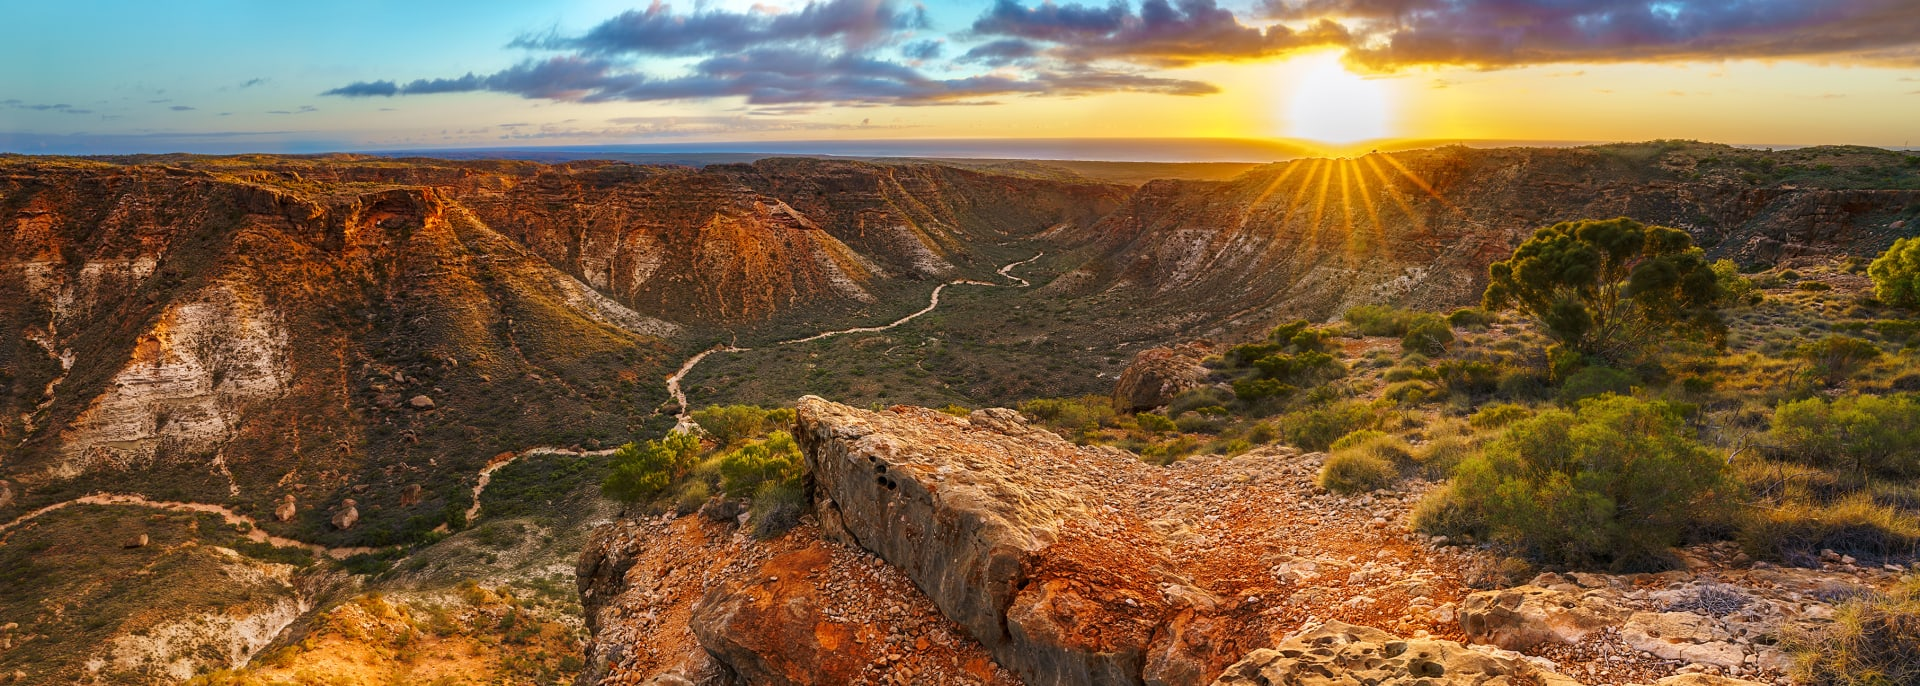 Charles Knife Canyon, Australia